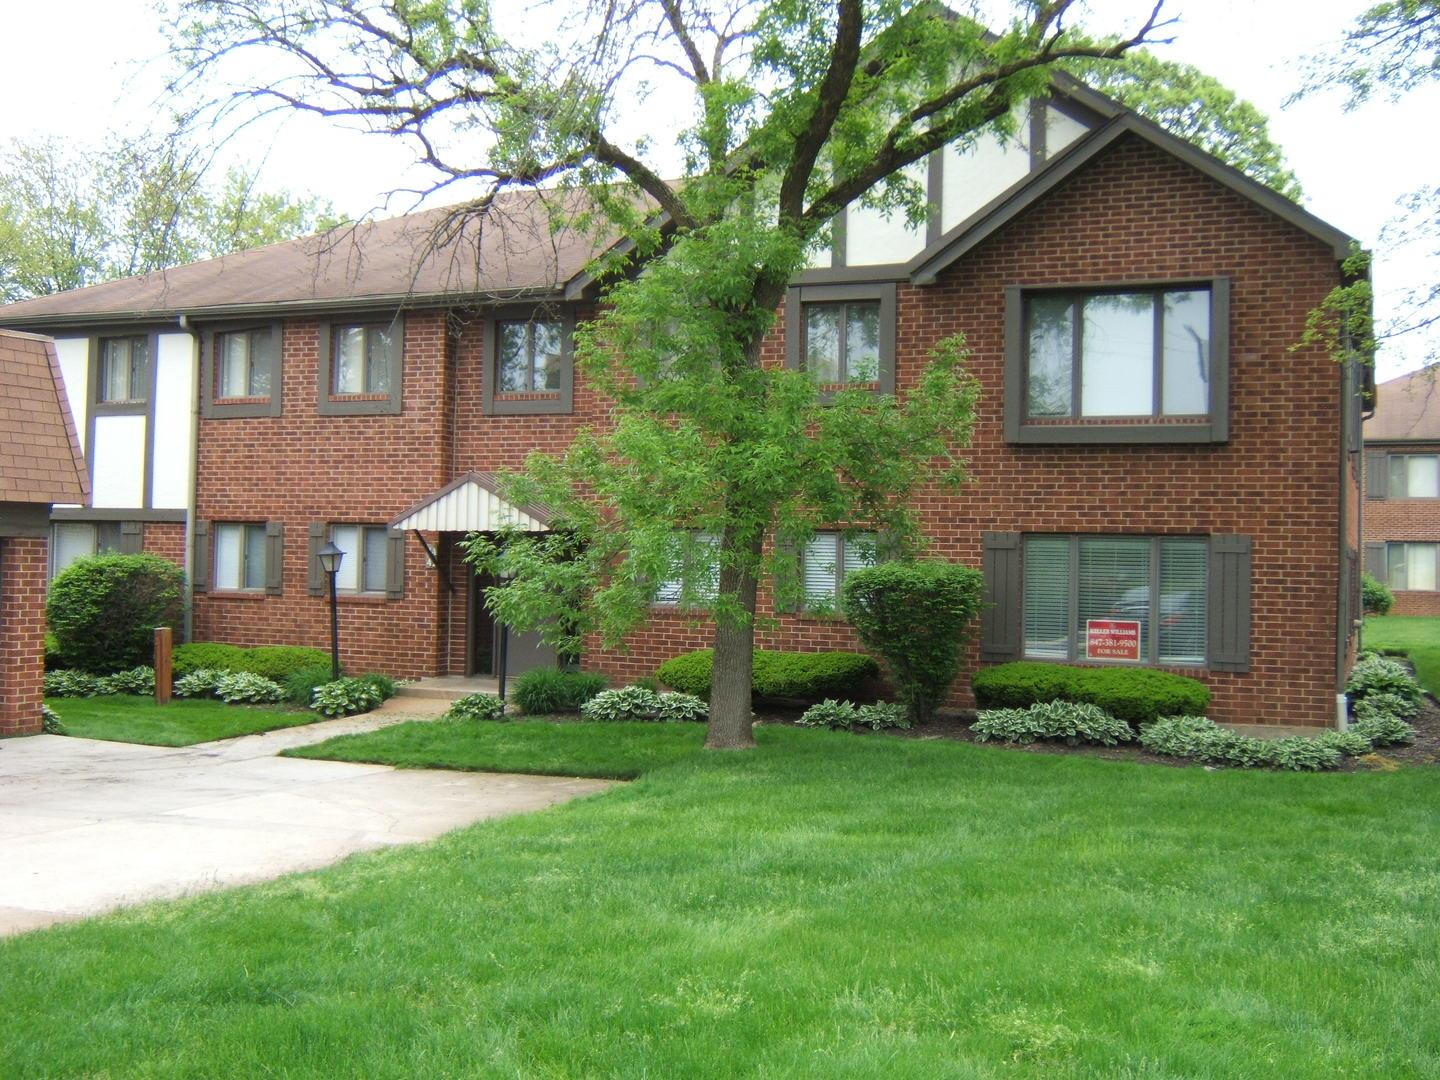 46 Parliament Dr W #130, Palos Heights, IL 60463 - #: 10723059